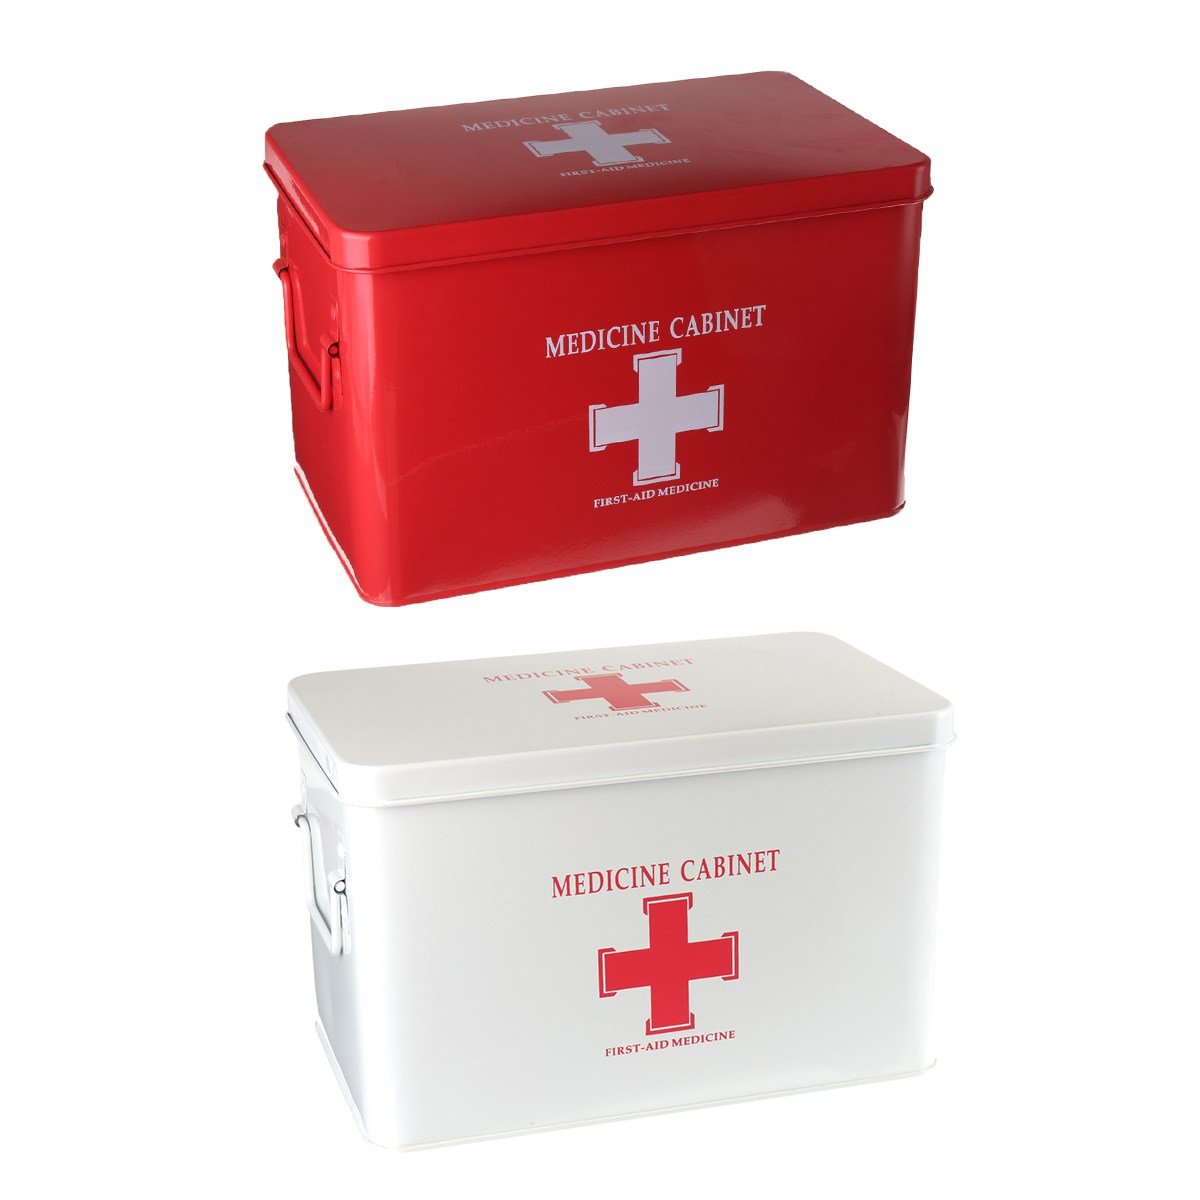 NEW Metal Medicine Cabinet Multi-layered Family Box First Aid Storage Box Storage Medical Gathering Emergency Kits first aid kit multi family home healthcare kits wholesale pharmaceutical medicine box medical portable suitcase medical kit